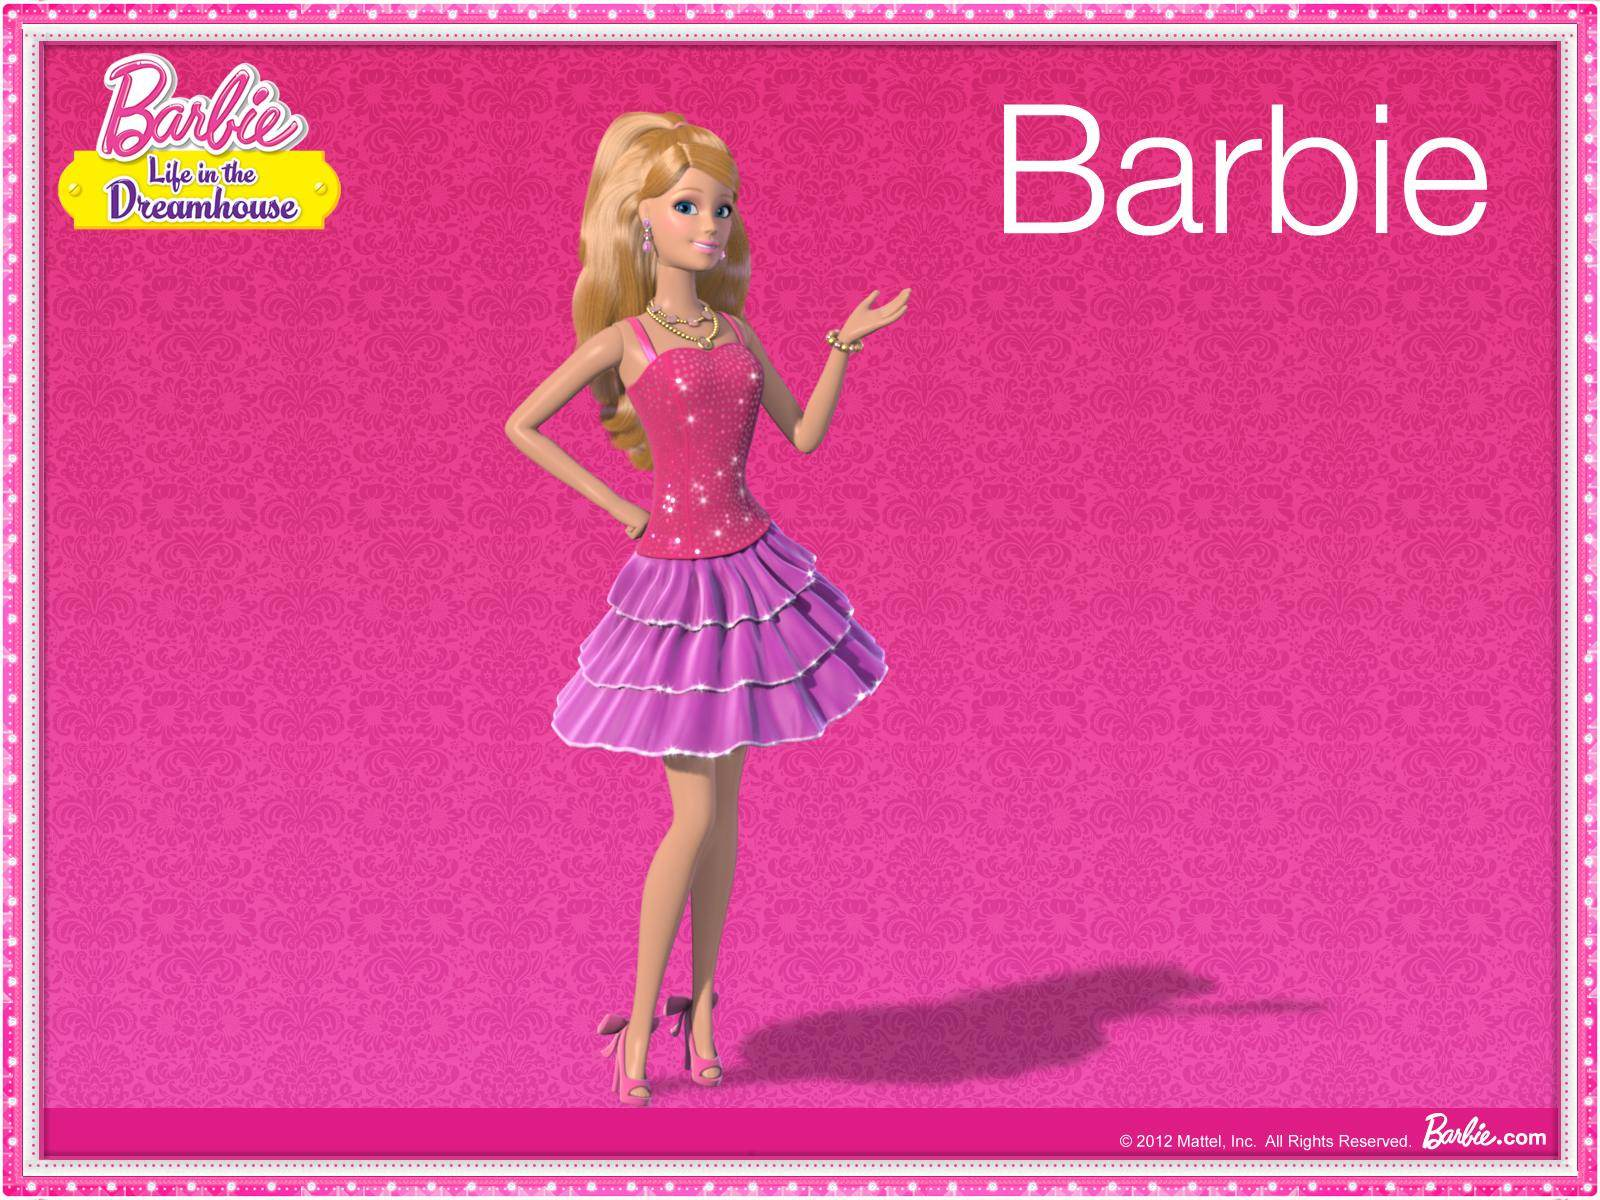 Barbie Life In The Dreamhouse Wallpaper